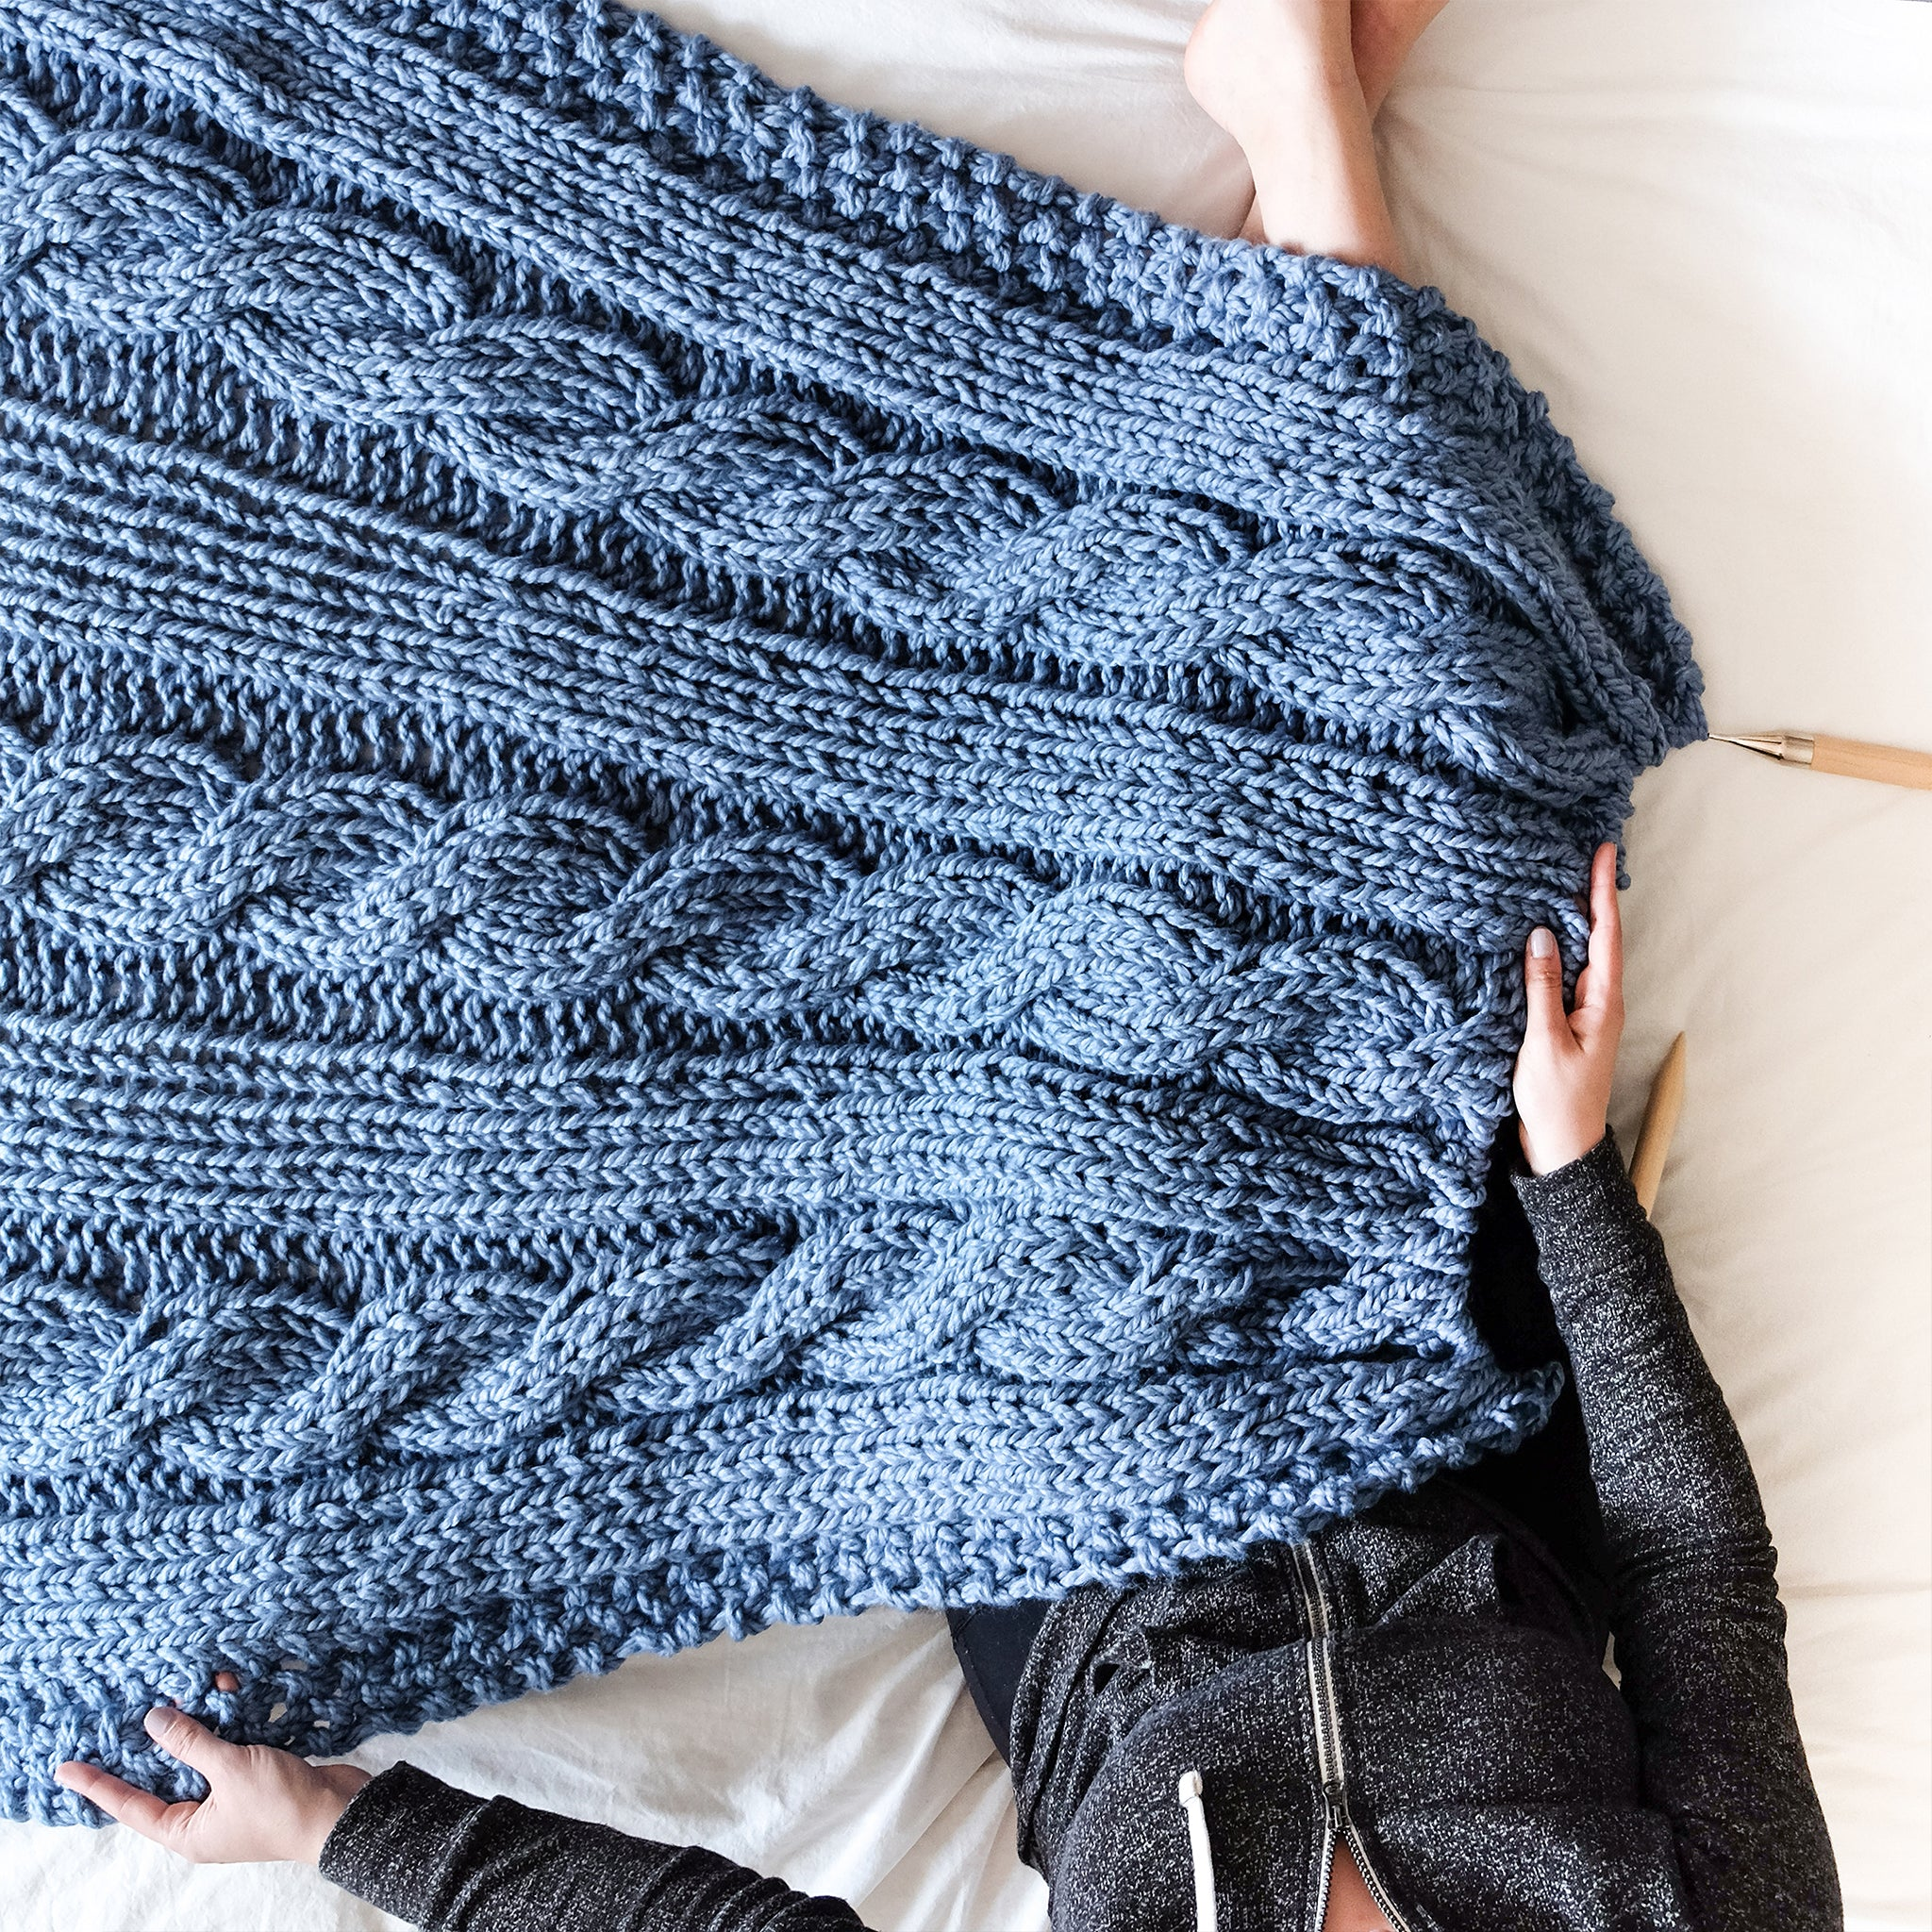 Chunky Cable Blanket Knitting Pattern La Reserve Design